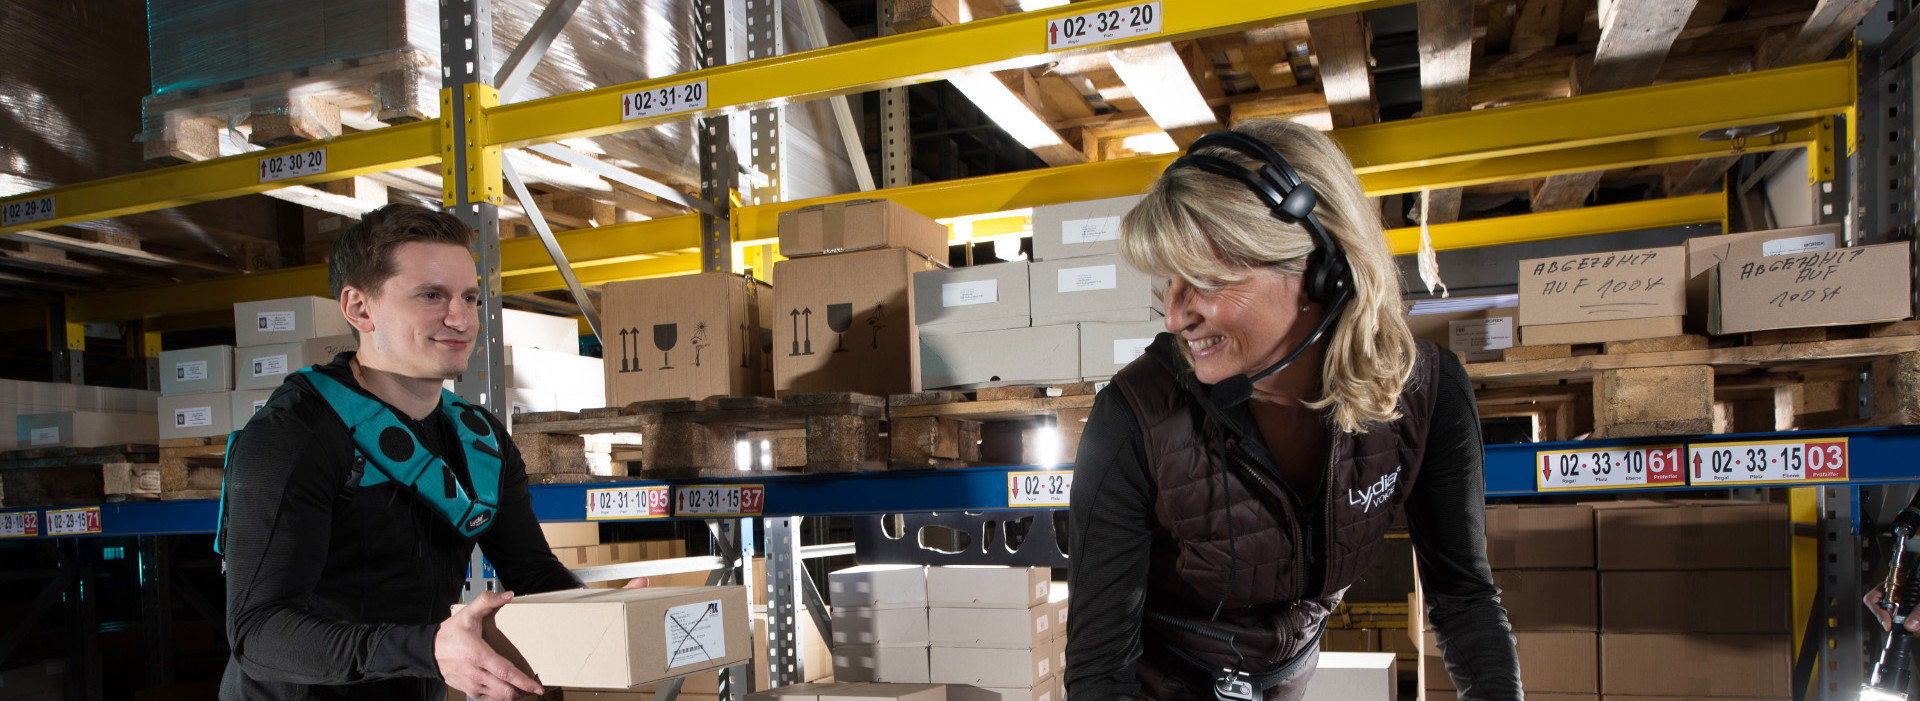 Two Warehouse Workers Are Picking By Voice With A Headset And With The Lydia VoiceWear Vest.